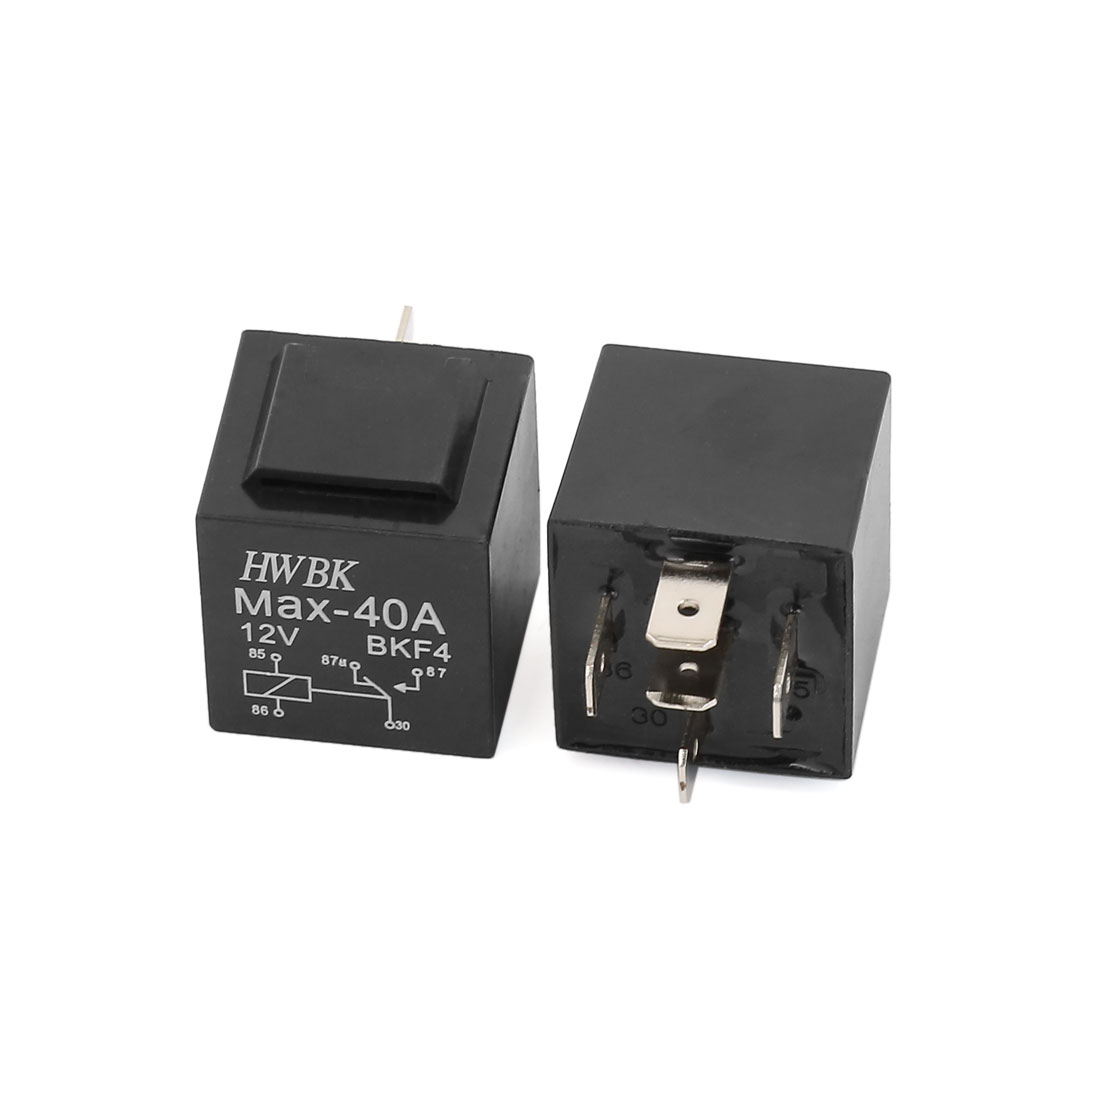 DC 12V 40A Car Automotive 5 Pin 1NO 1NC SPDT Control Device Power Relay 2 Pcs